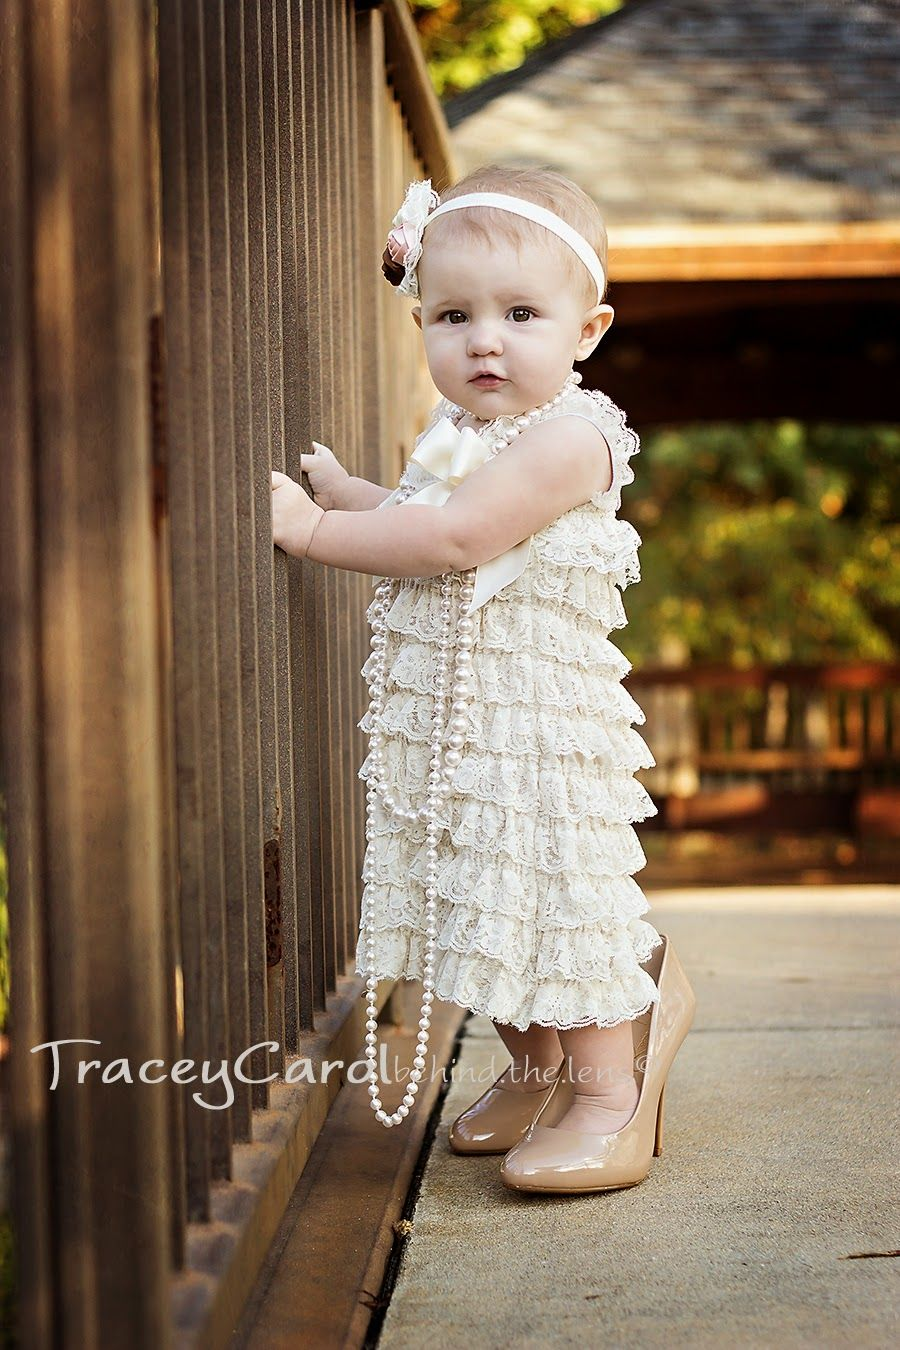 1 Year Baby Girl Pictures : pictures, Tracey, Carol, Behind, Lens:, Old!}, Hamilton, Gallery, Photoshoot, Girl,, Photo, Shoots,, Photos